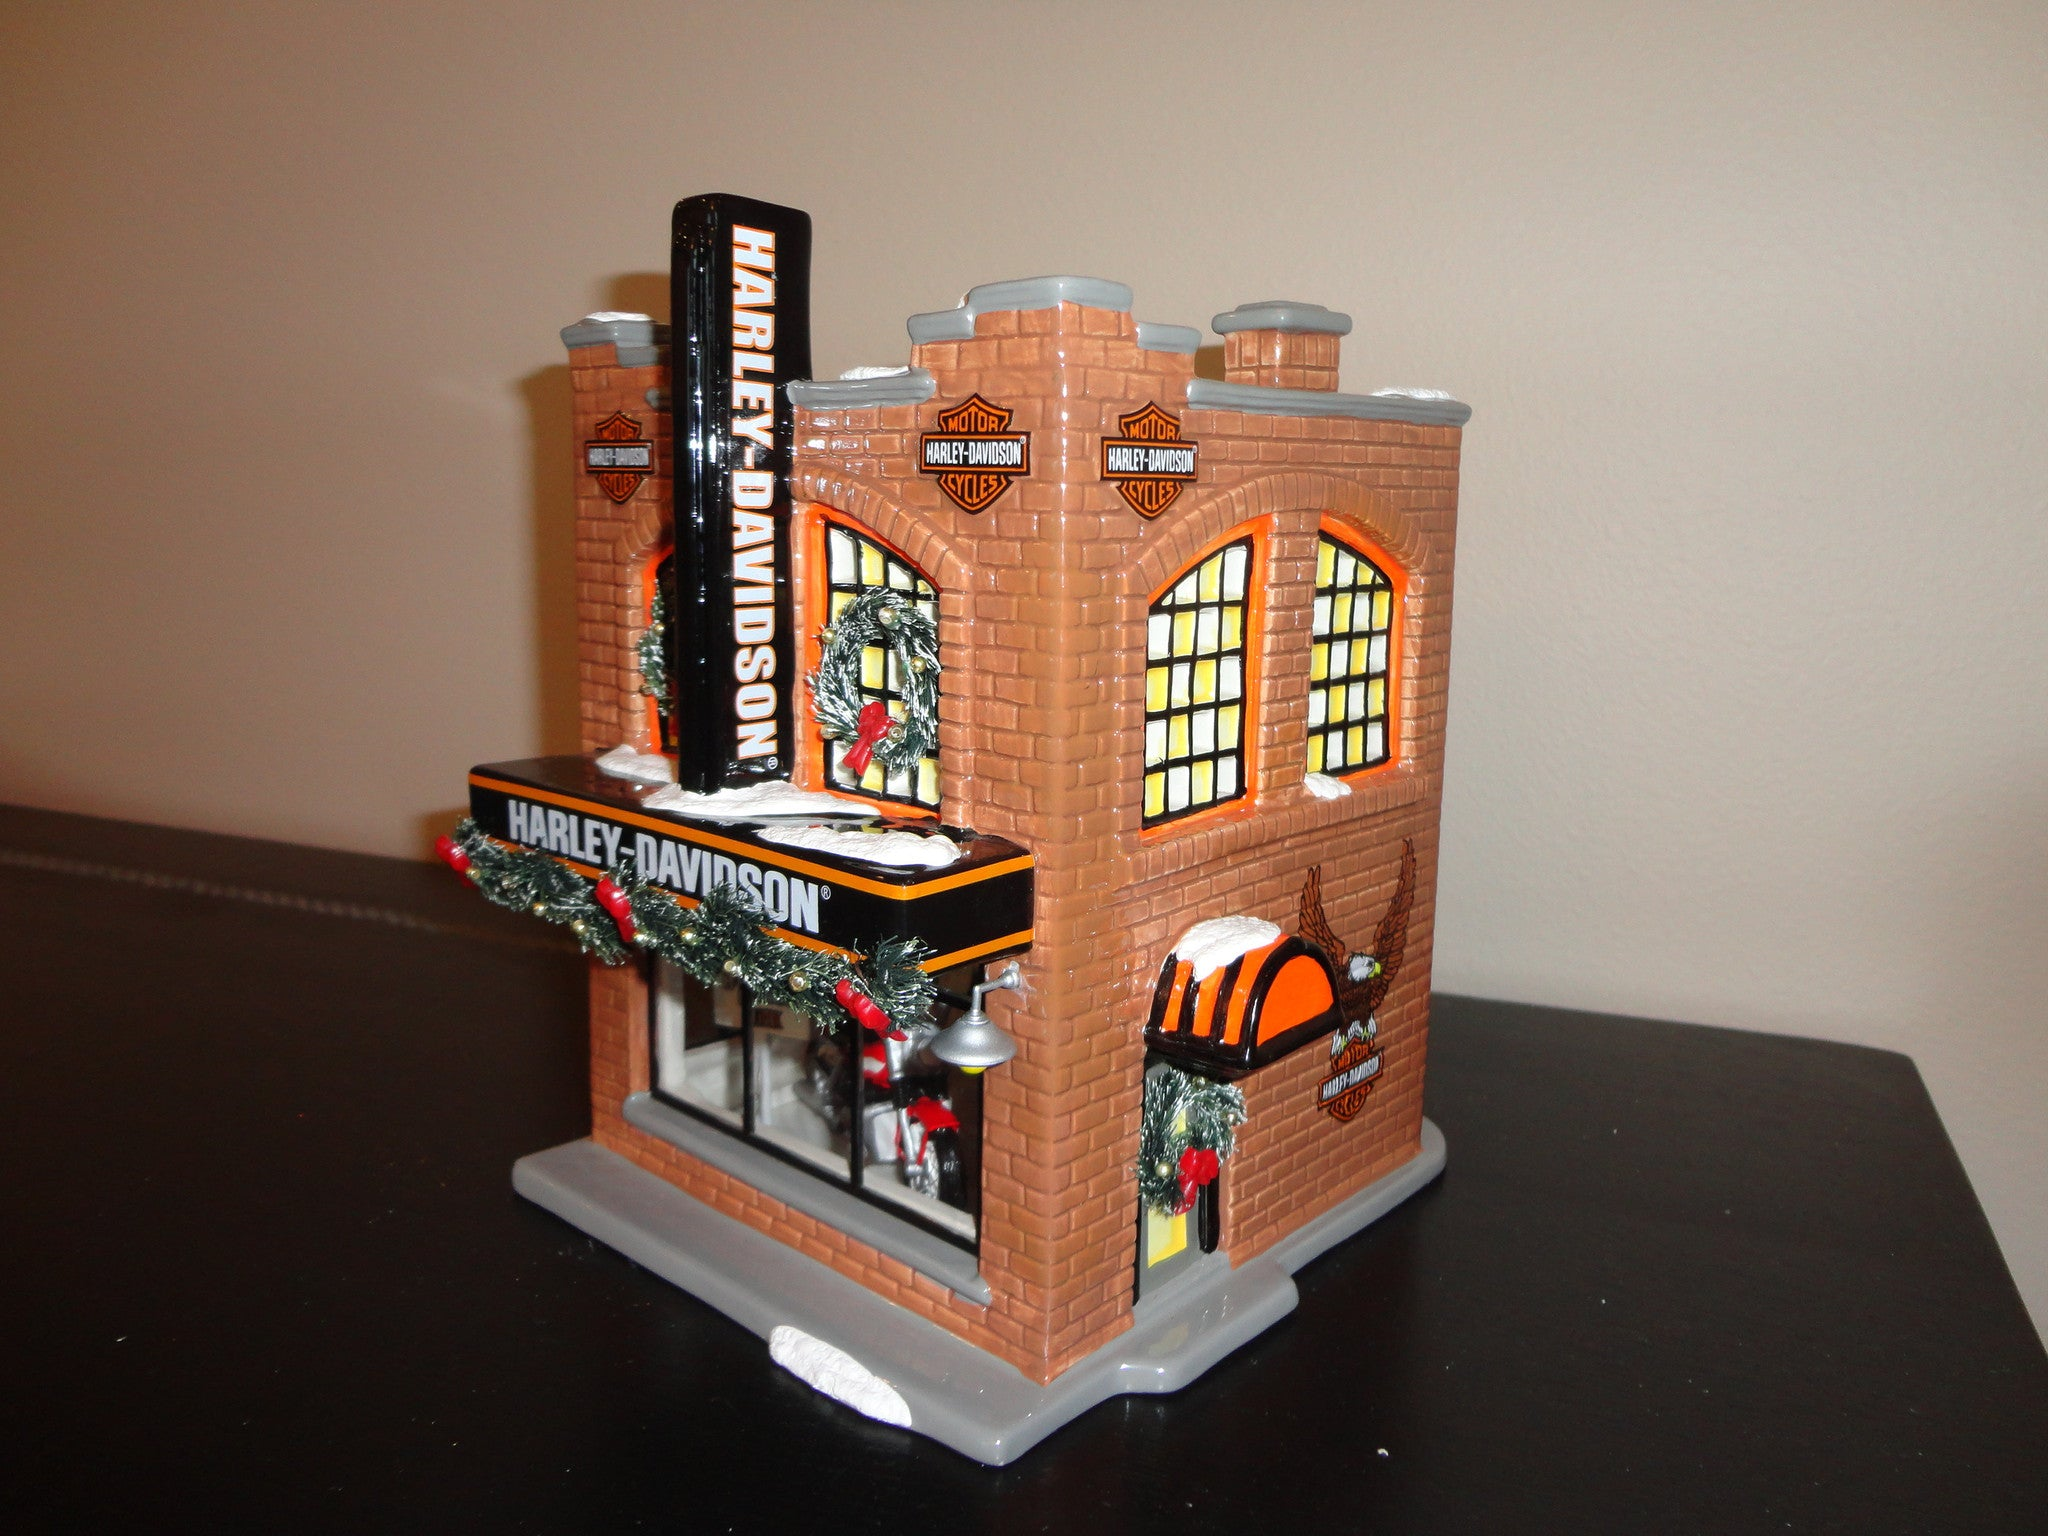 Department 56 Harley Davidson Snow Village - Red Barn Company Store